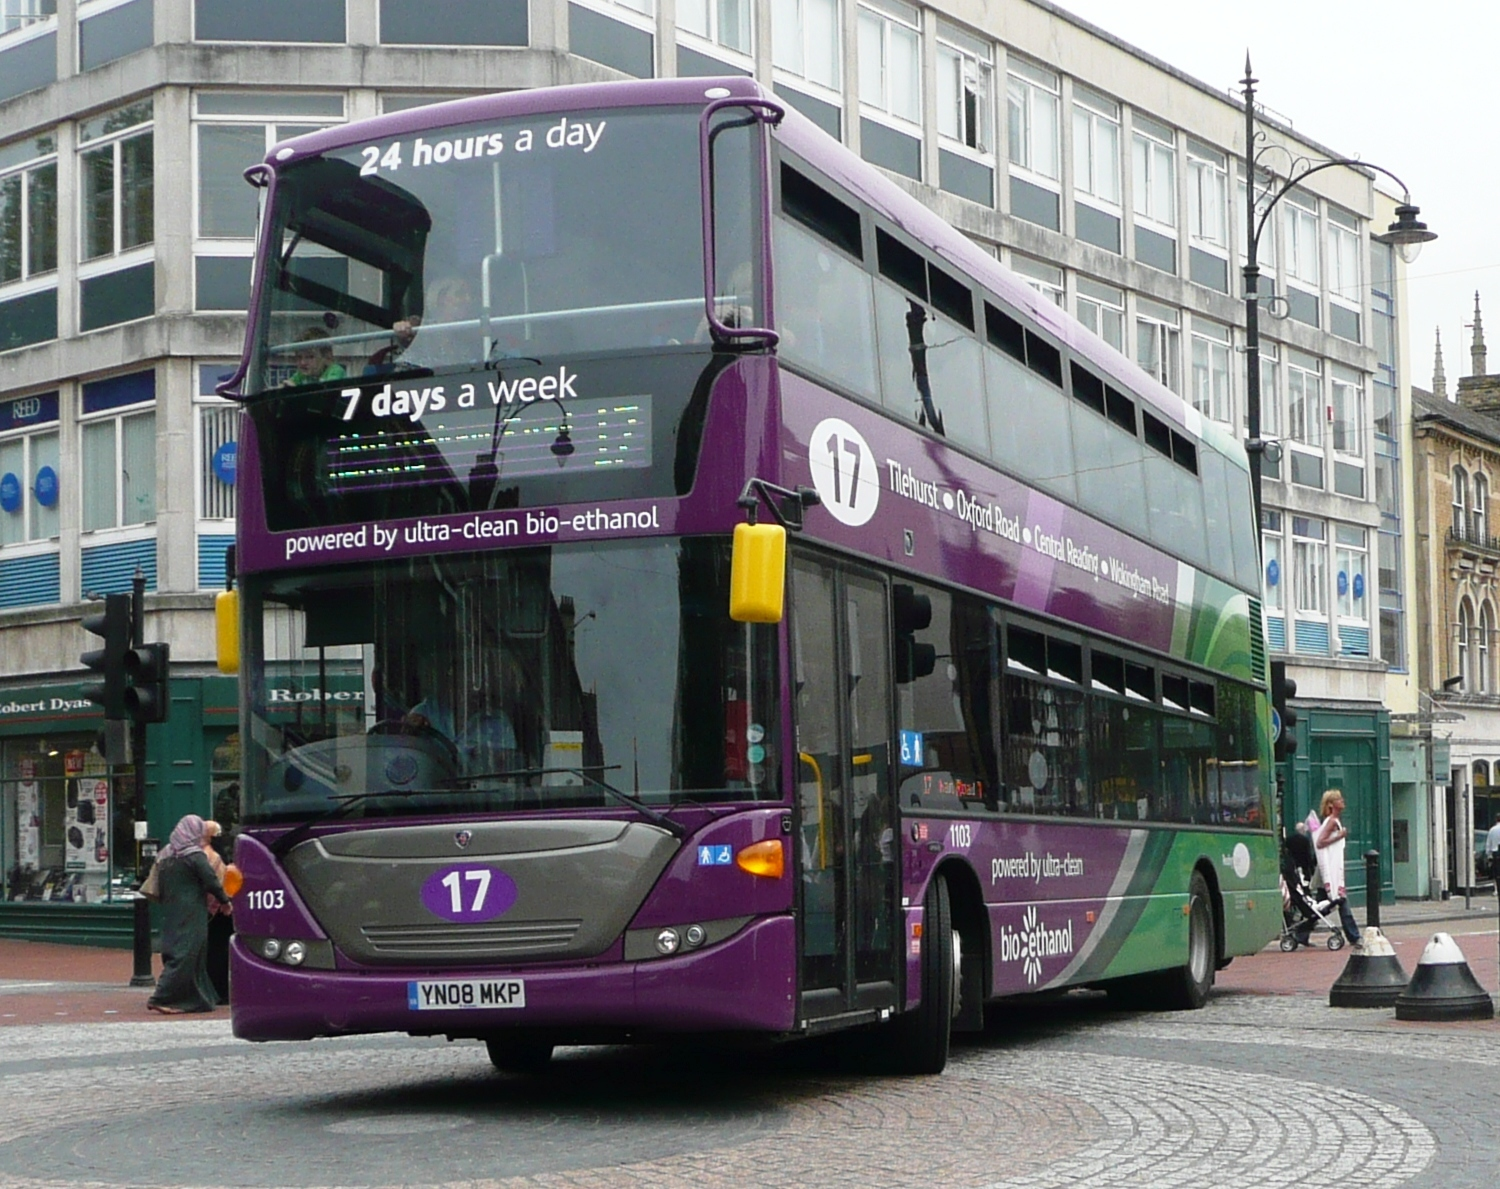 No. 17 bus running on bio-ethanol, photo by Arriva436